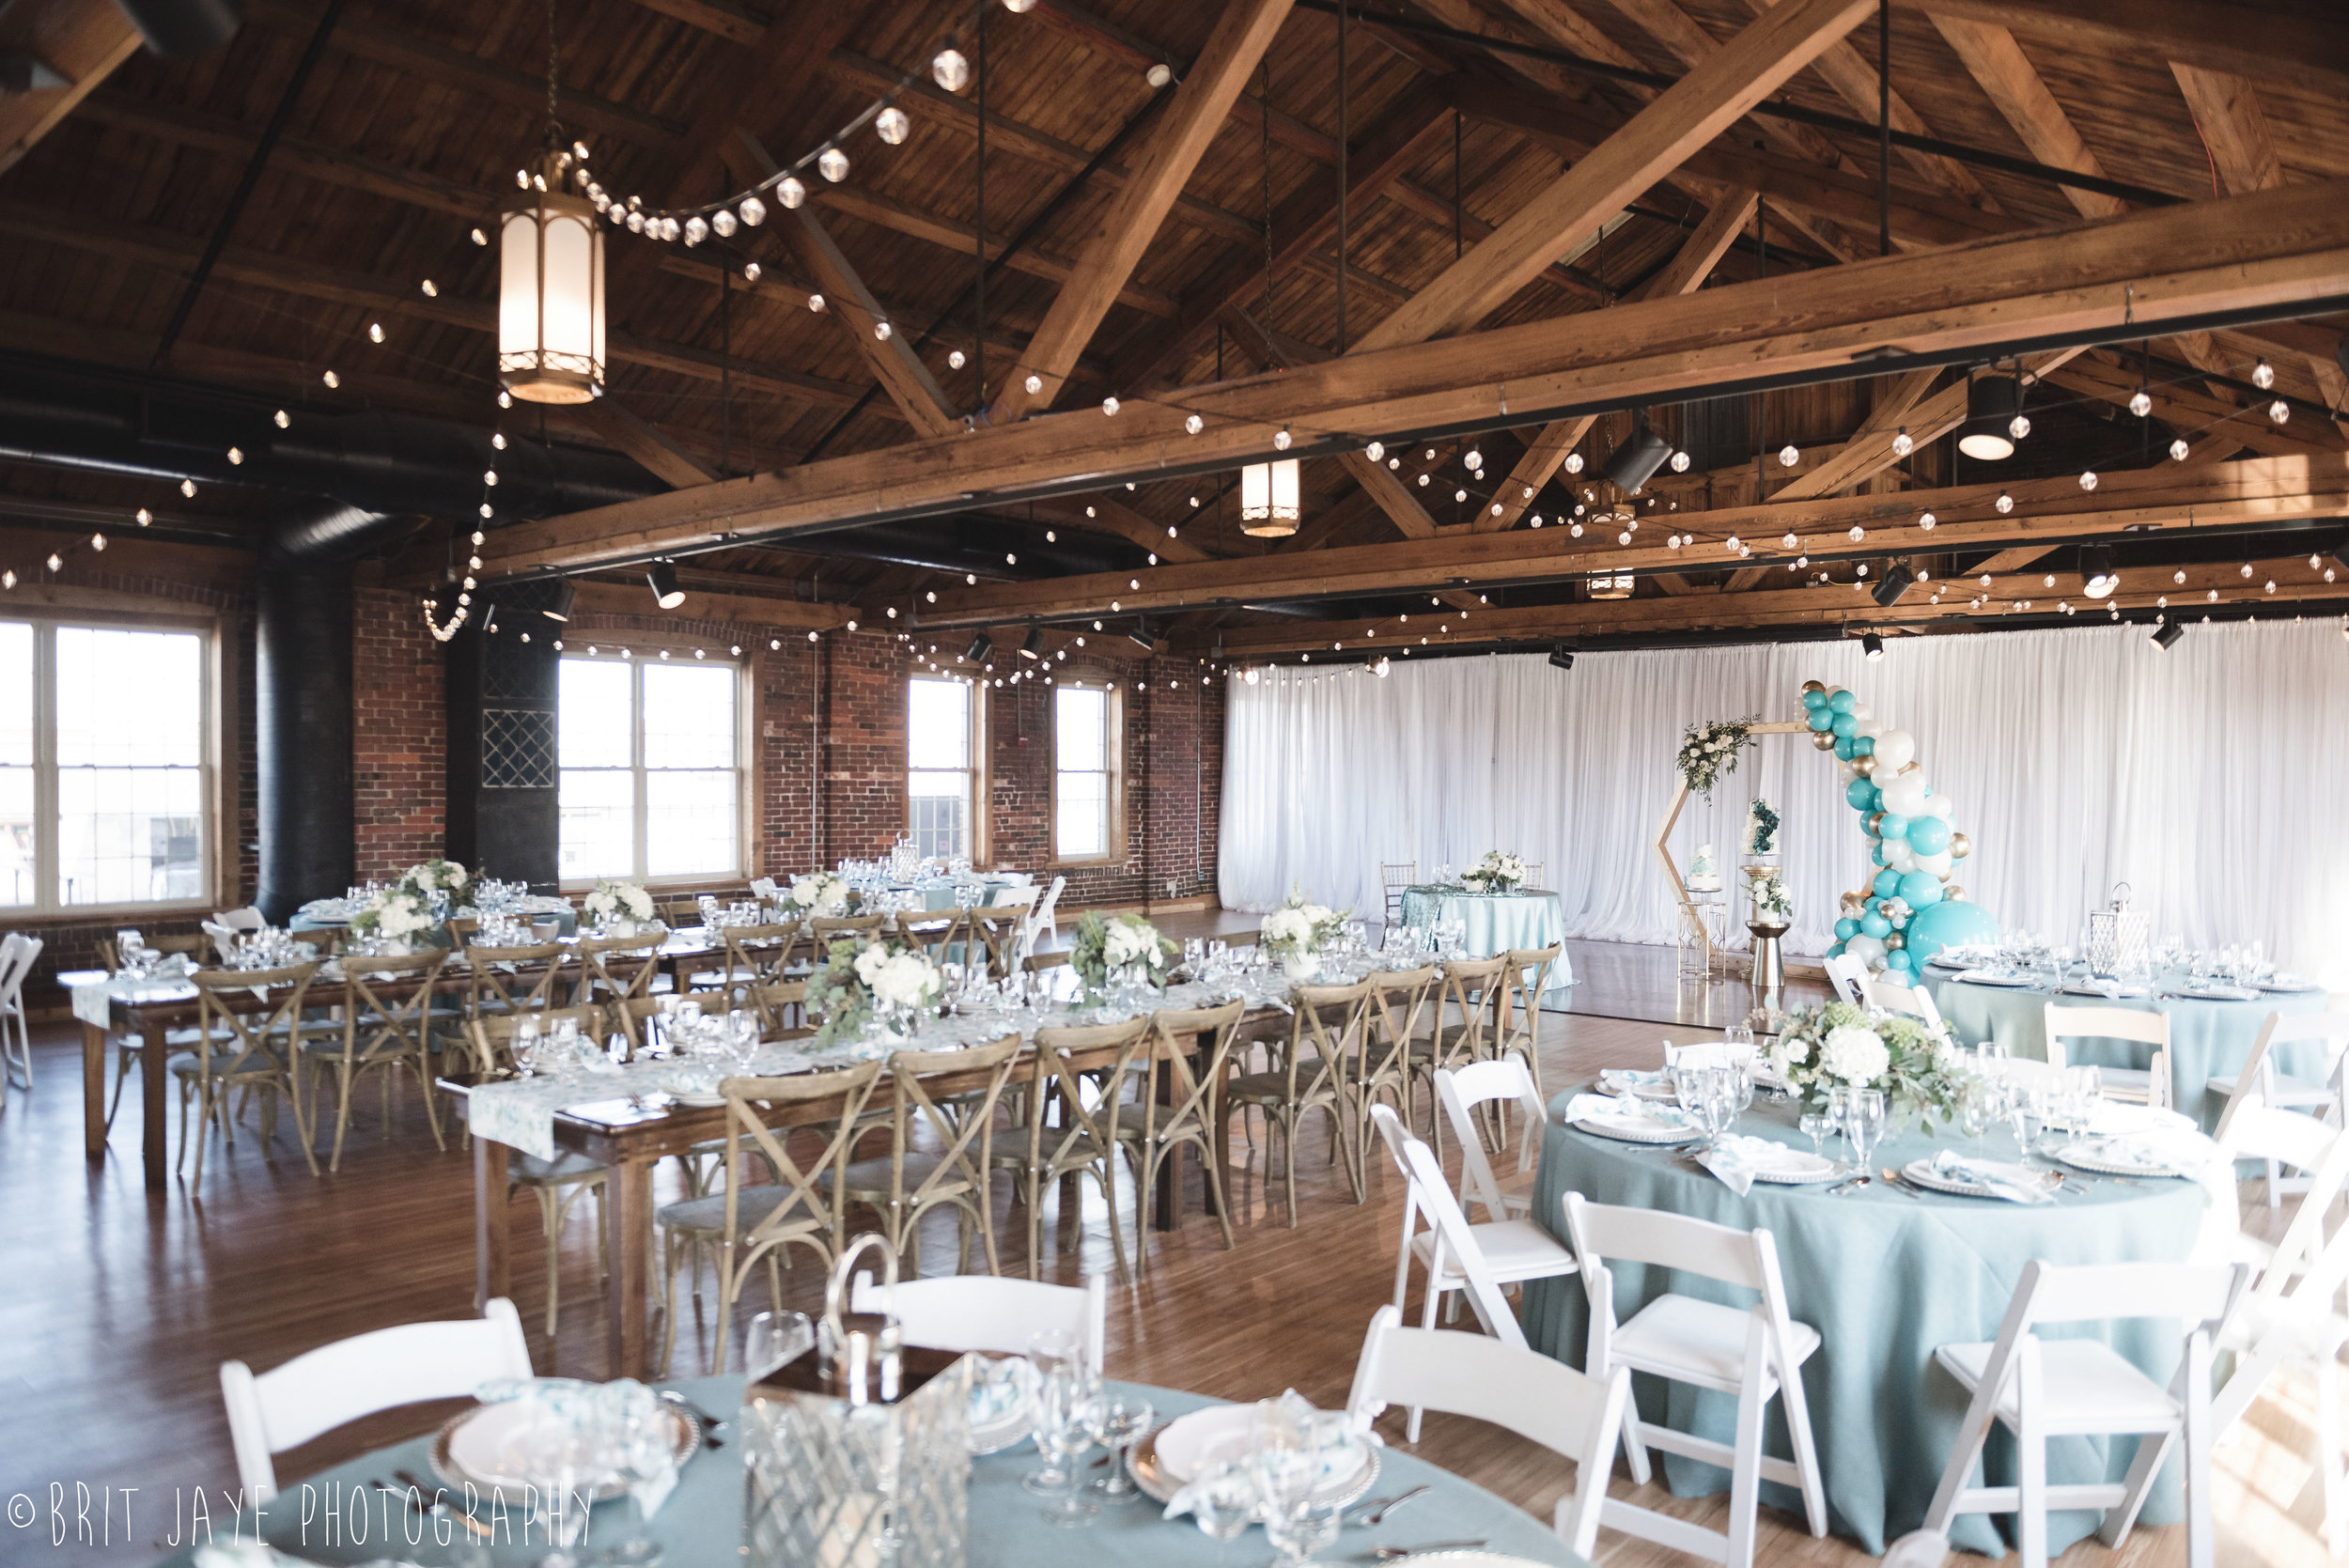 Top Of The Market Wedding Venue Open House Ohio Wedding Photography